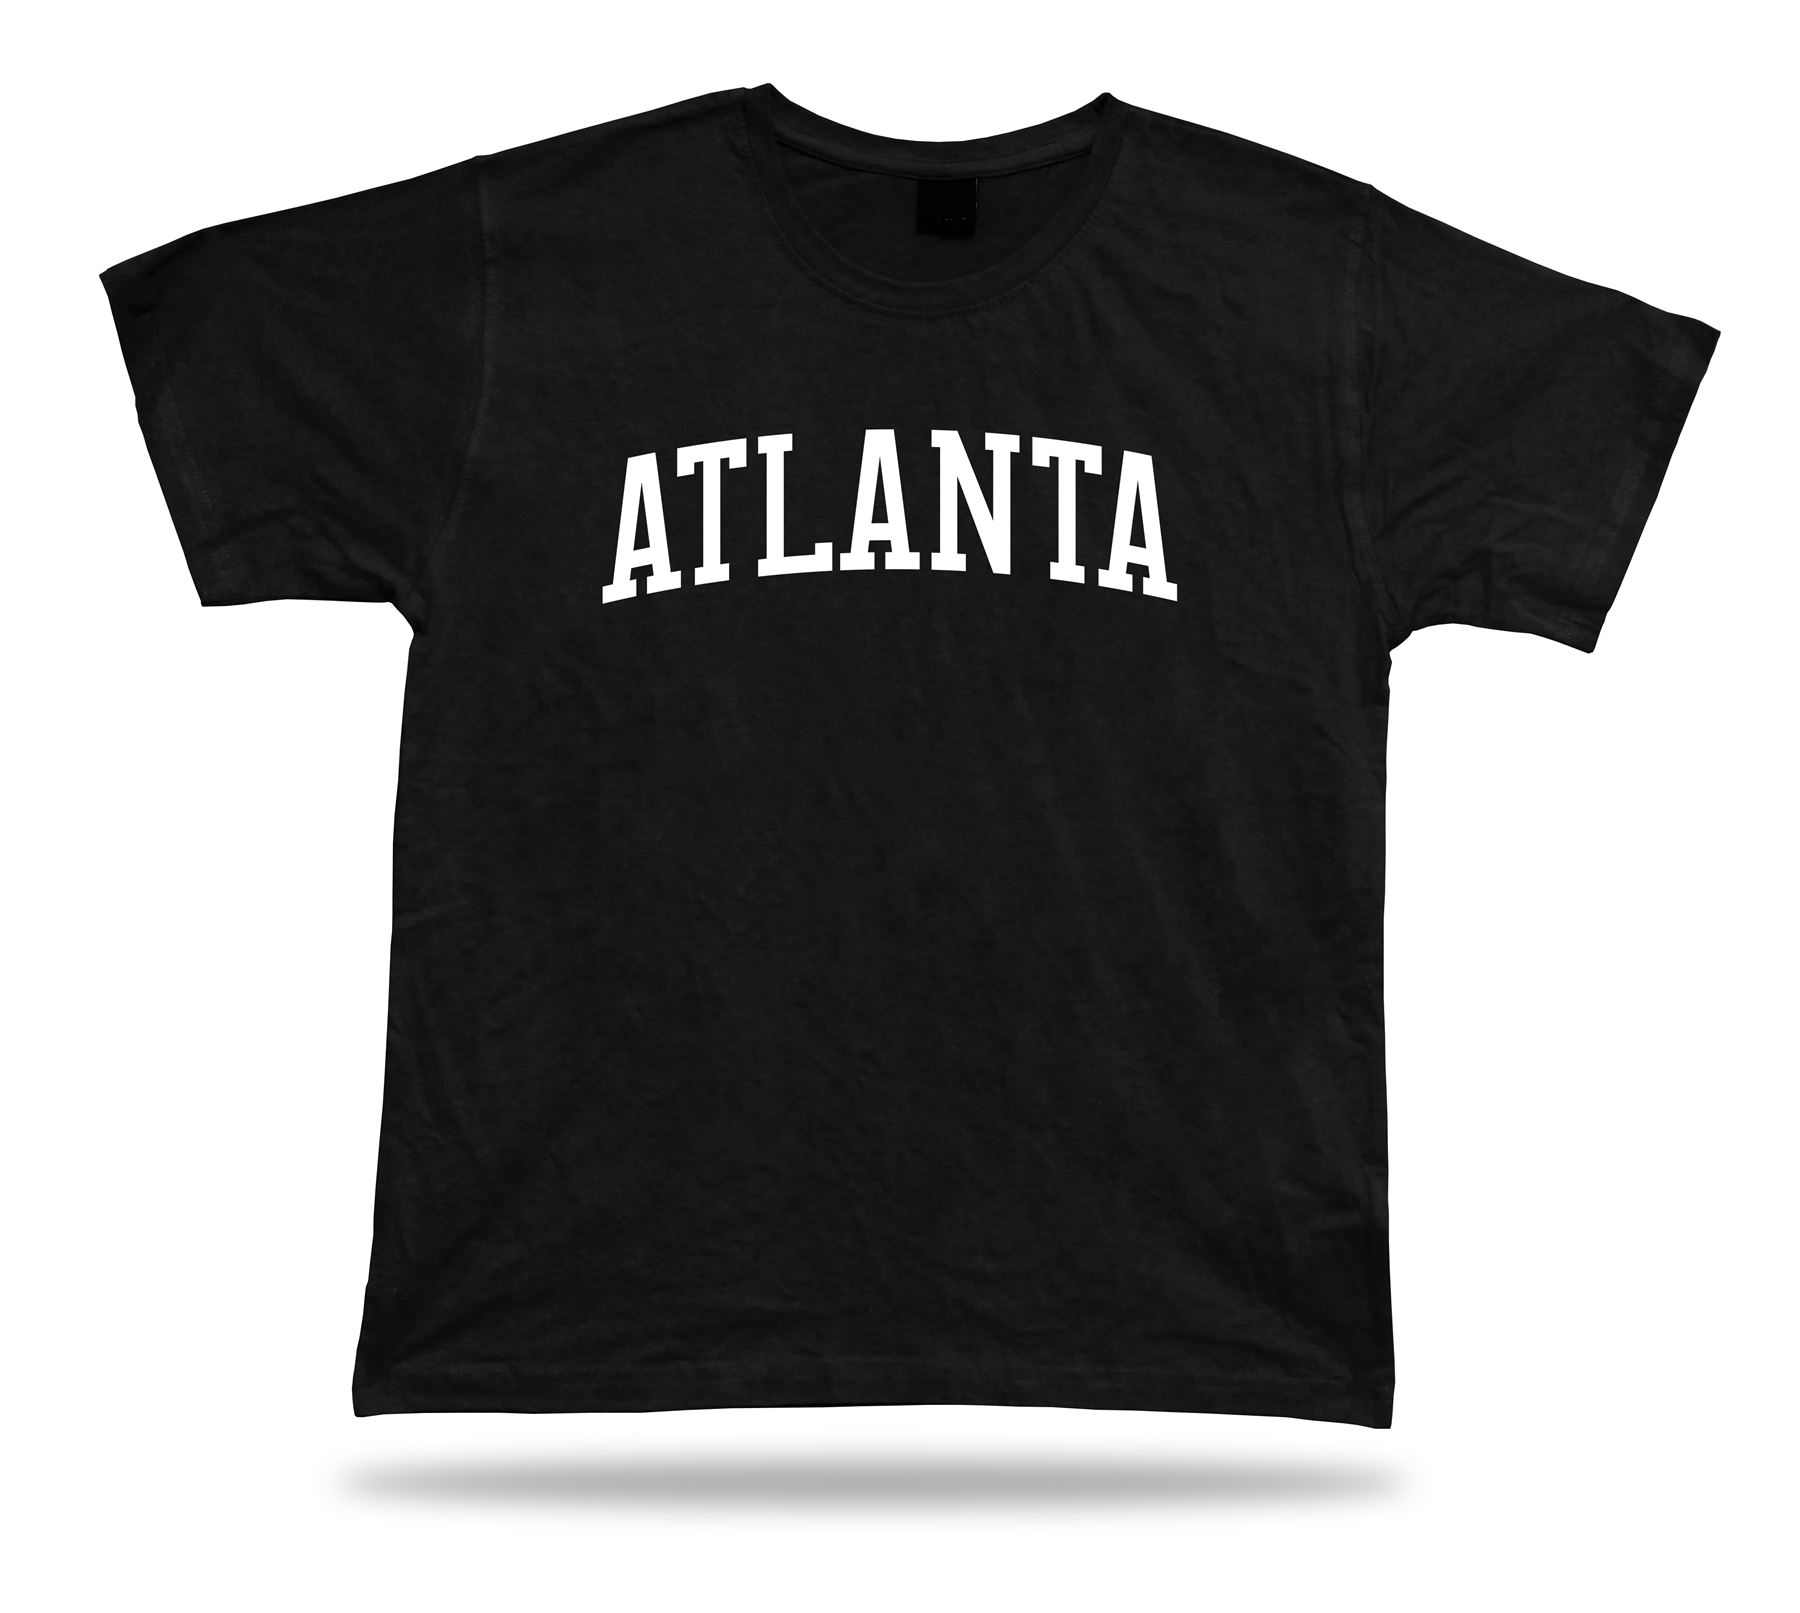 T-Shirt Lucky Souvenir Tee Stylish Gift Idea Atlanta Georgia Train Baseball Printed T Shirt Men Cotton T-Shirt New Style(China (Mainland))